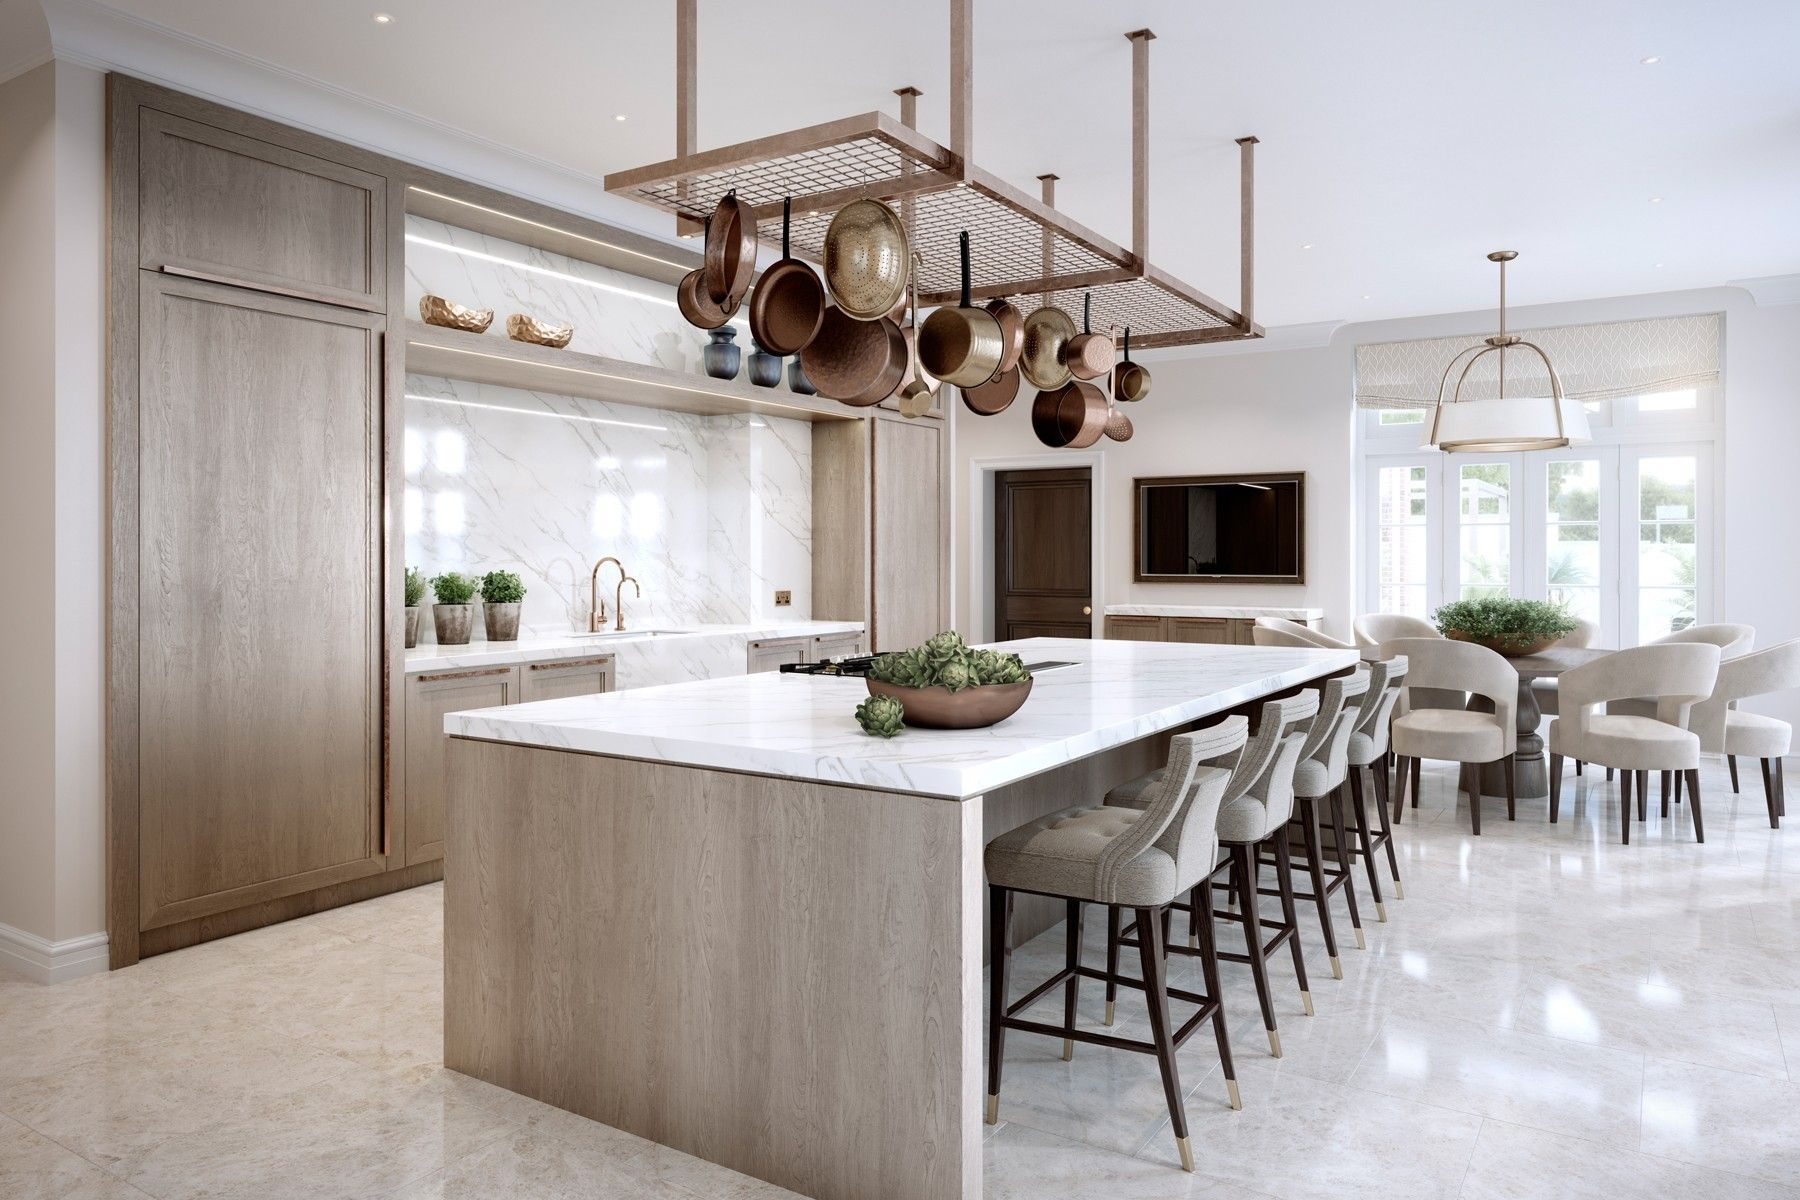 Kitchen seating ideas Surrey Family Home Luxury